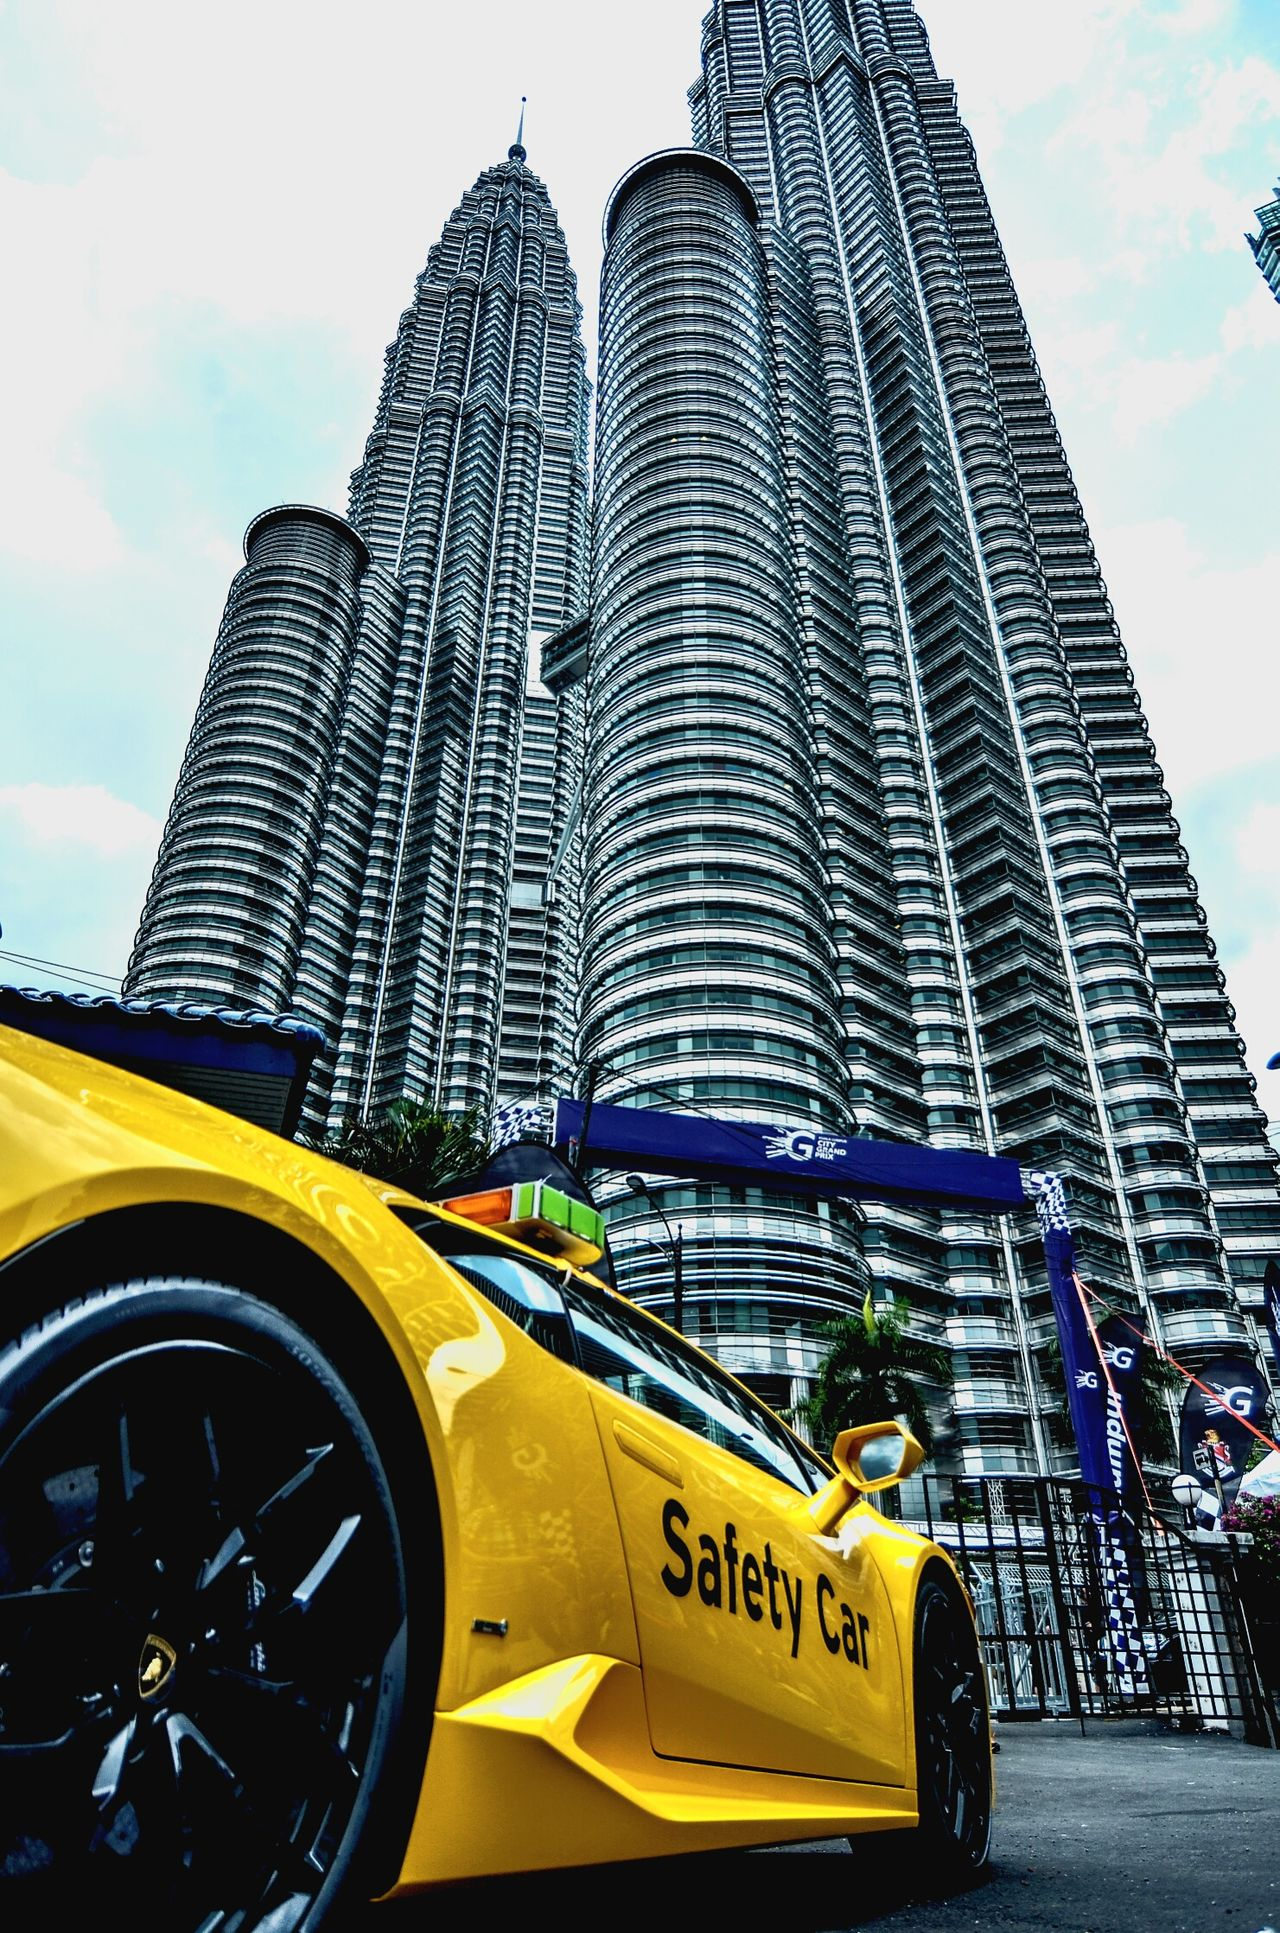 The Drive Yellow Transportation Taxi Mode Of Transport City Car Land Vehicle Outdoors Sky No People Motosports Sports Photography Racing Photography Road Safetycar KLCC Twin Towers KLCC Tower Lamborghini LamborghiniLovers GrandPrix